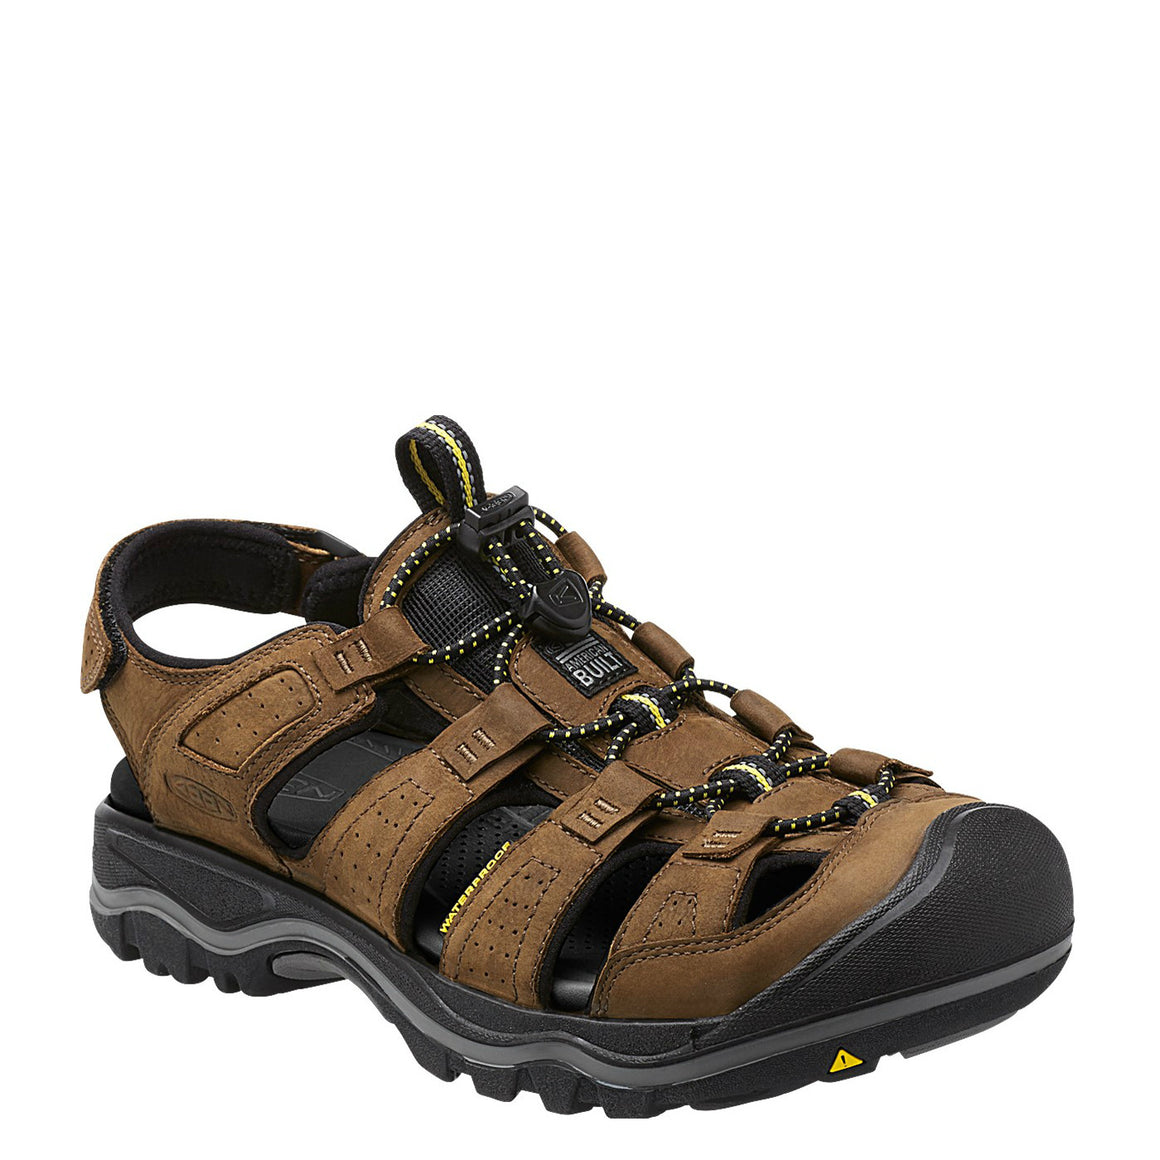 Keen Men's Rialto - Bison/Black 1014675 - ShoeShackOnline